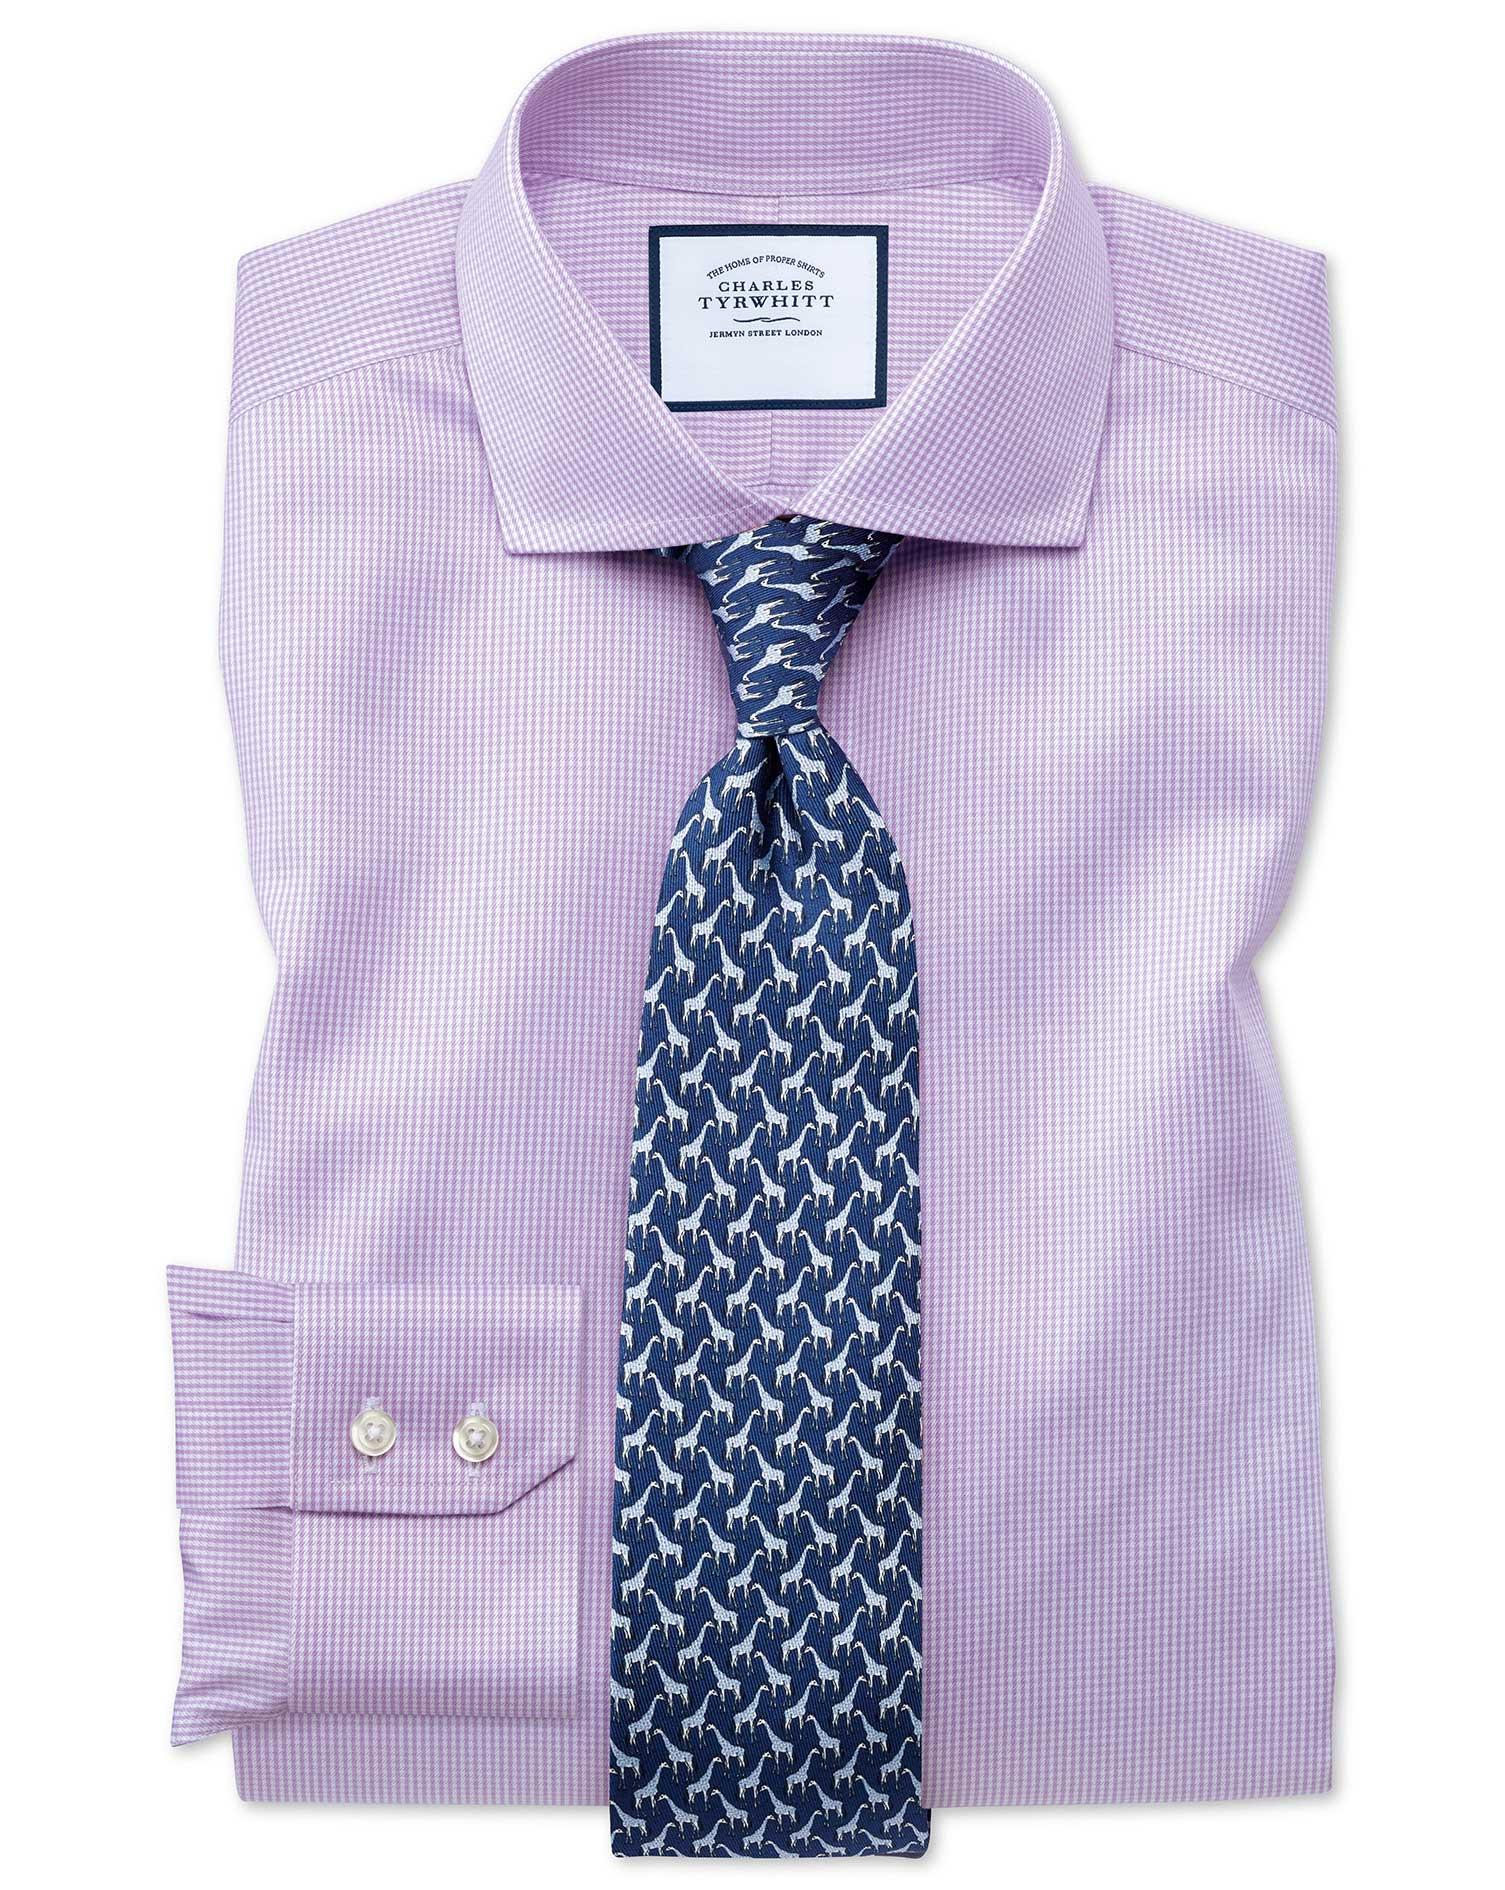 Slim Fit Cutaway Non-Iron Puppytooth Lilac Cotton Formal Shirt Double Cuff Size 16.5/35 by Charles T